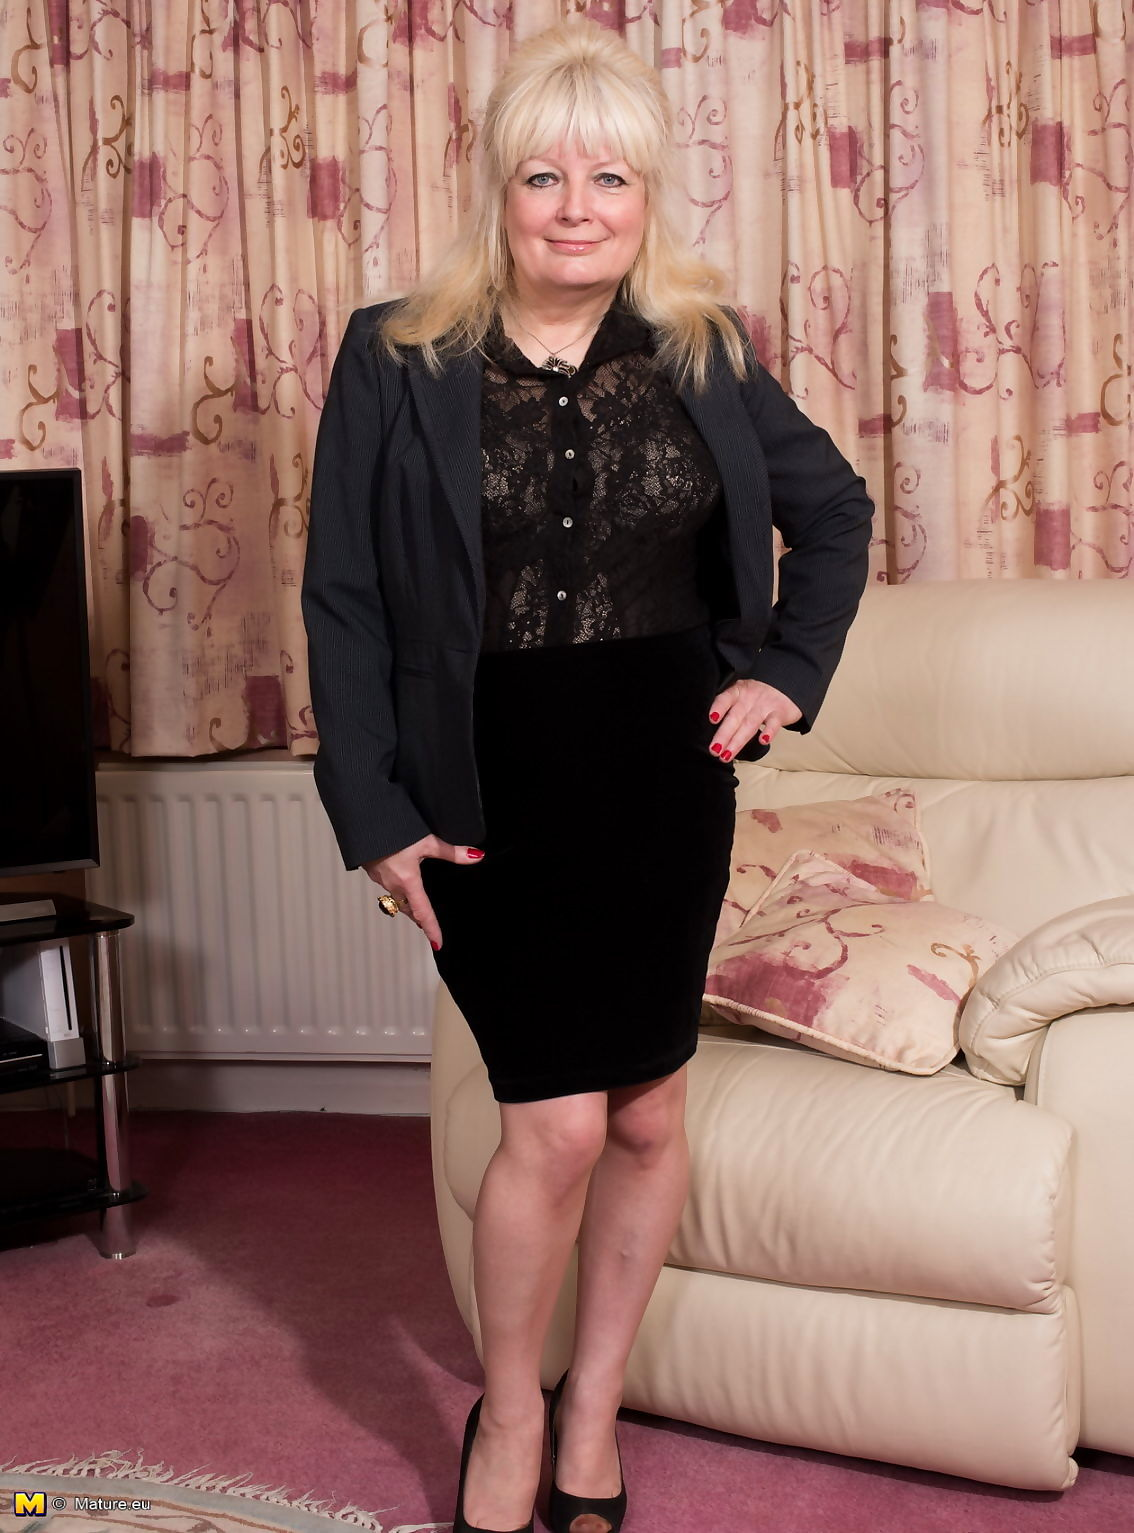 British mature lady getiing wet and wild - part 602